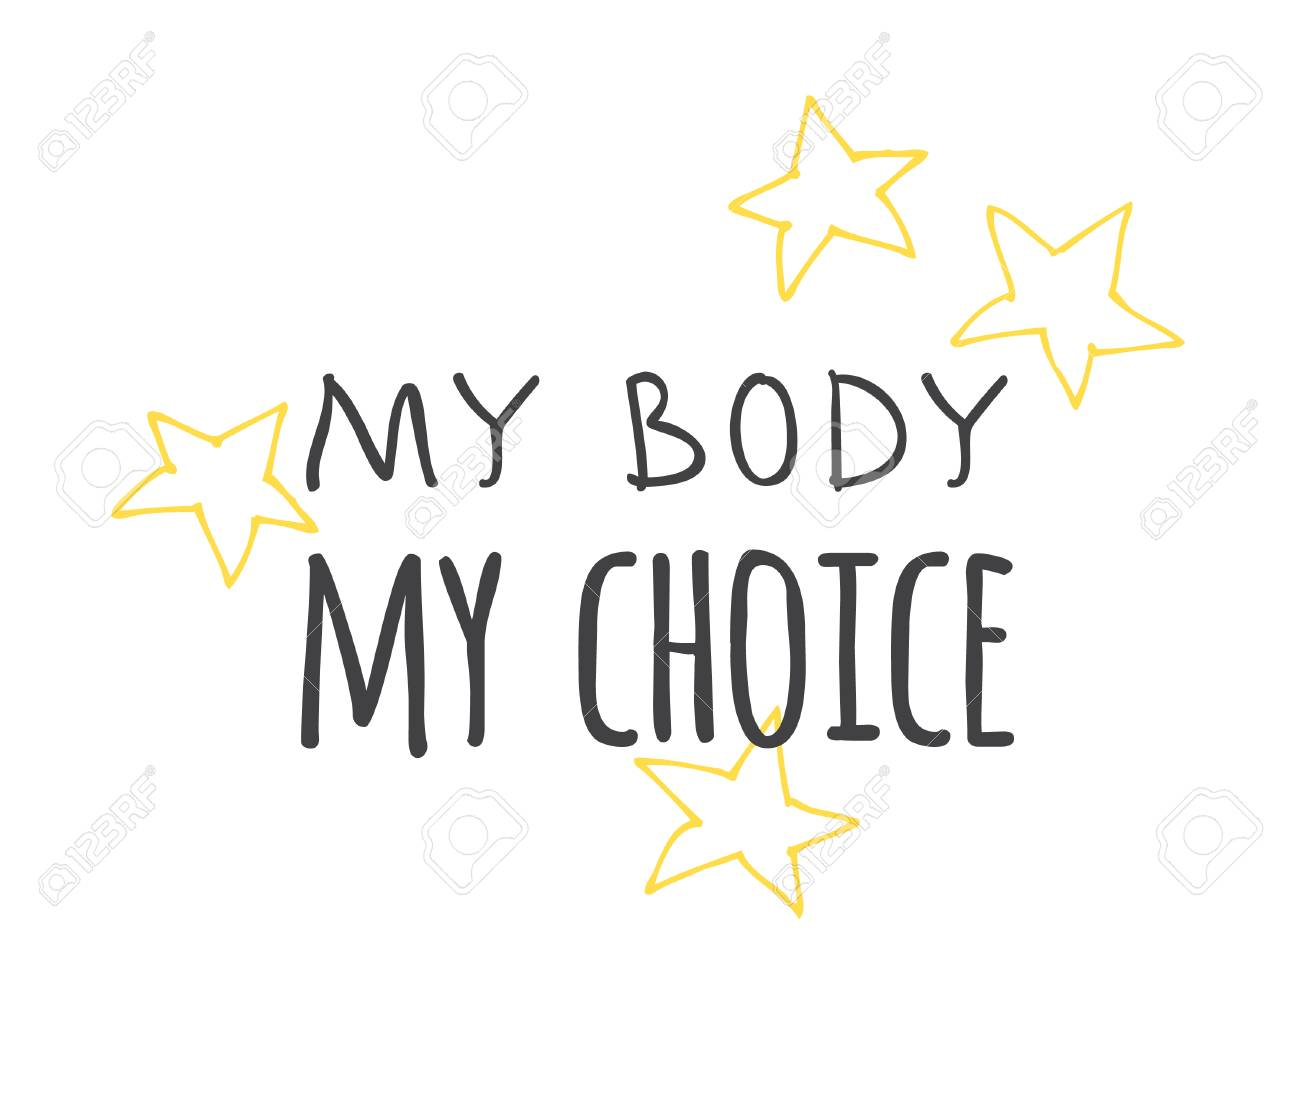 Hand drawn illustration and text MY BODY MY DECISION. Positive quote for today and doodle style element. Creative ink art work. Actual vector drawing - 128486954